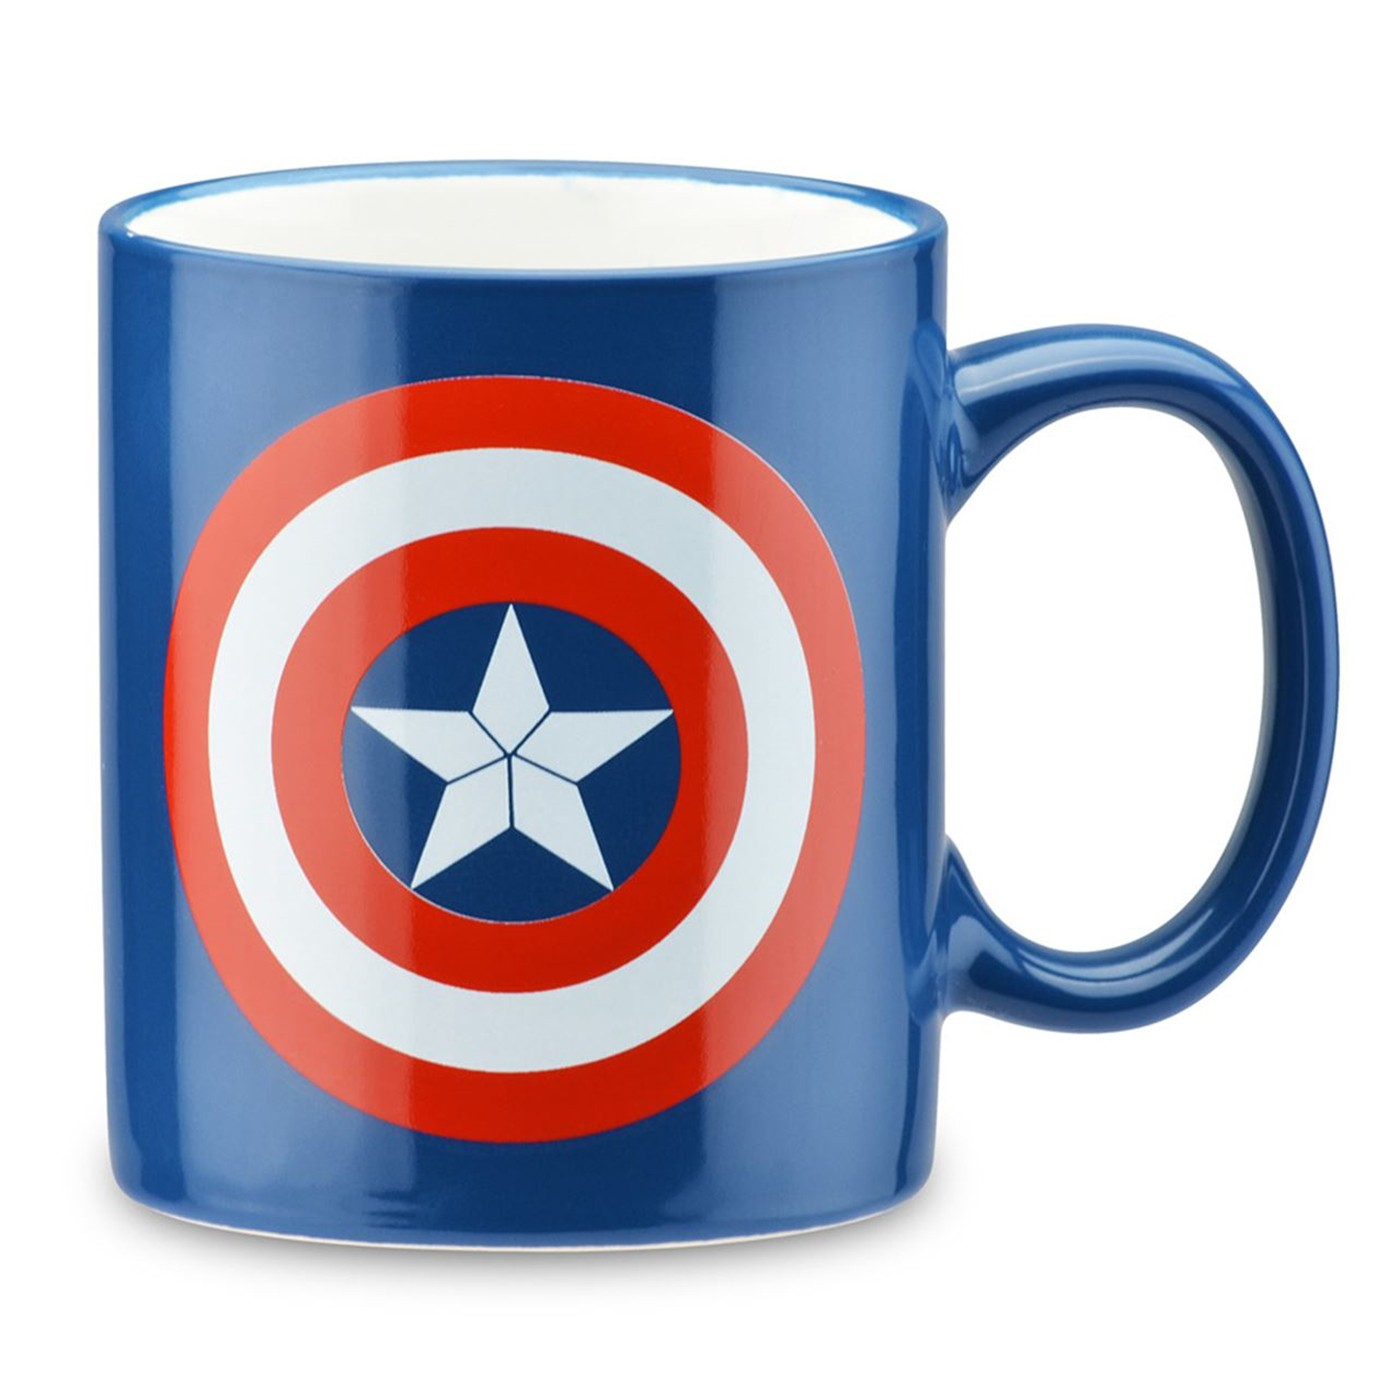 Captain America 1-Cup Coffee Maker with Mug